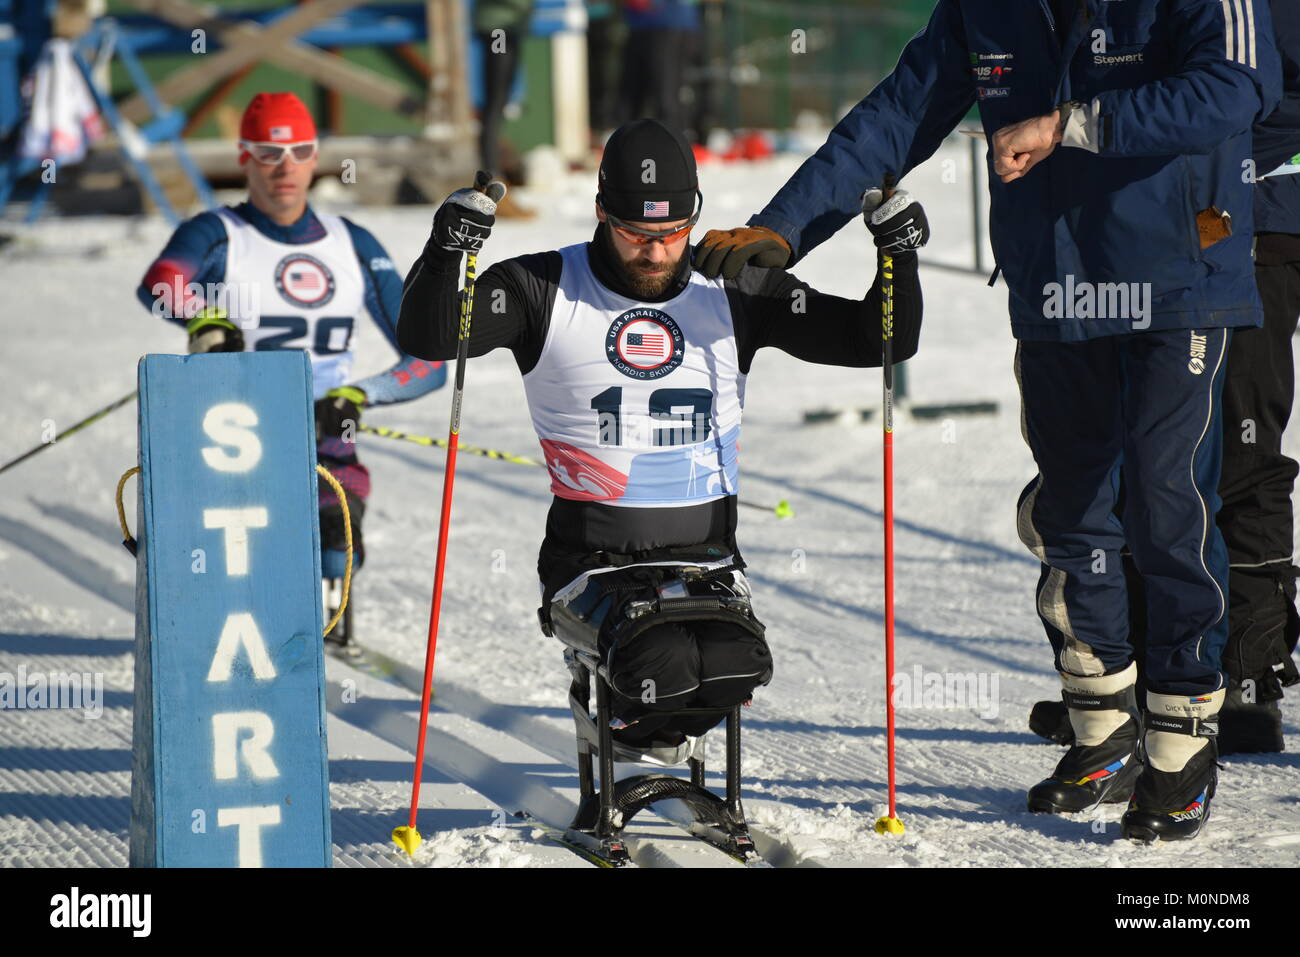 Paralympic cross country ski racer Aaron Pike starting race at 2016 U.S. Paralympics Sit Ski races, Craftsbury Outdoor - Stock Image